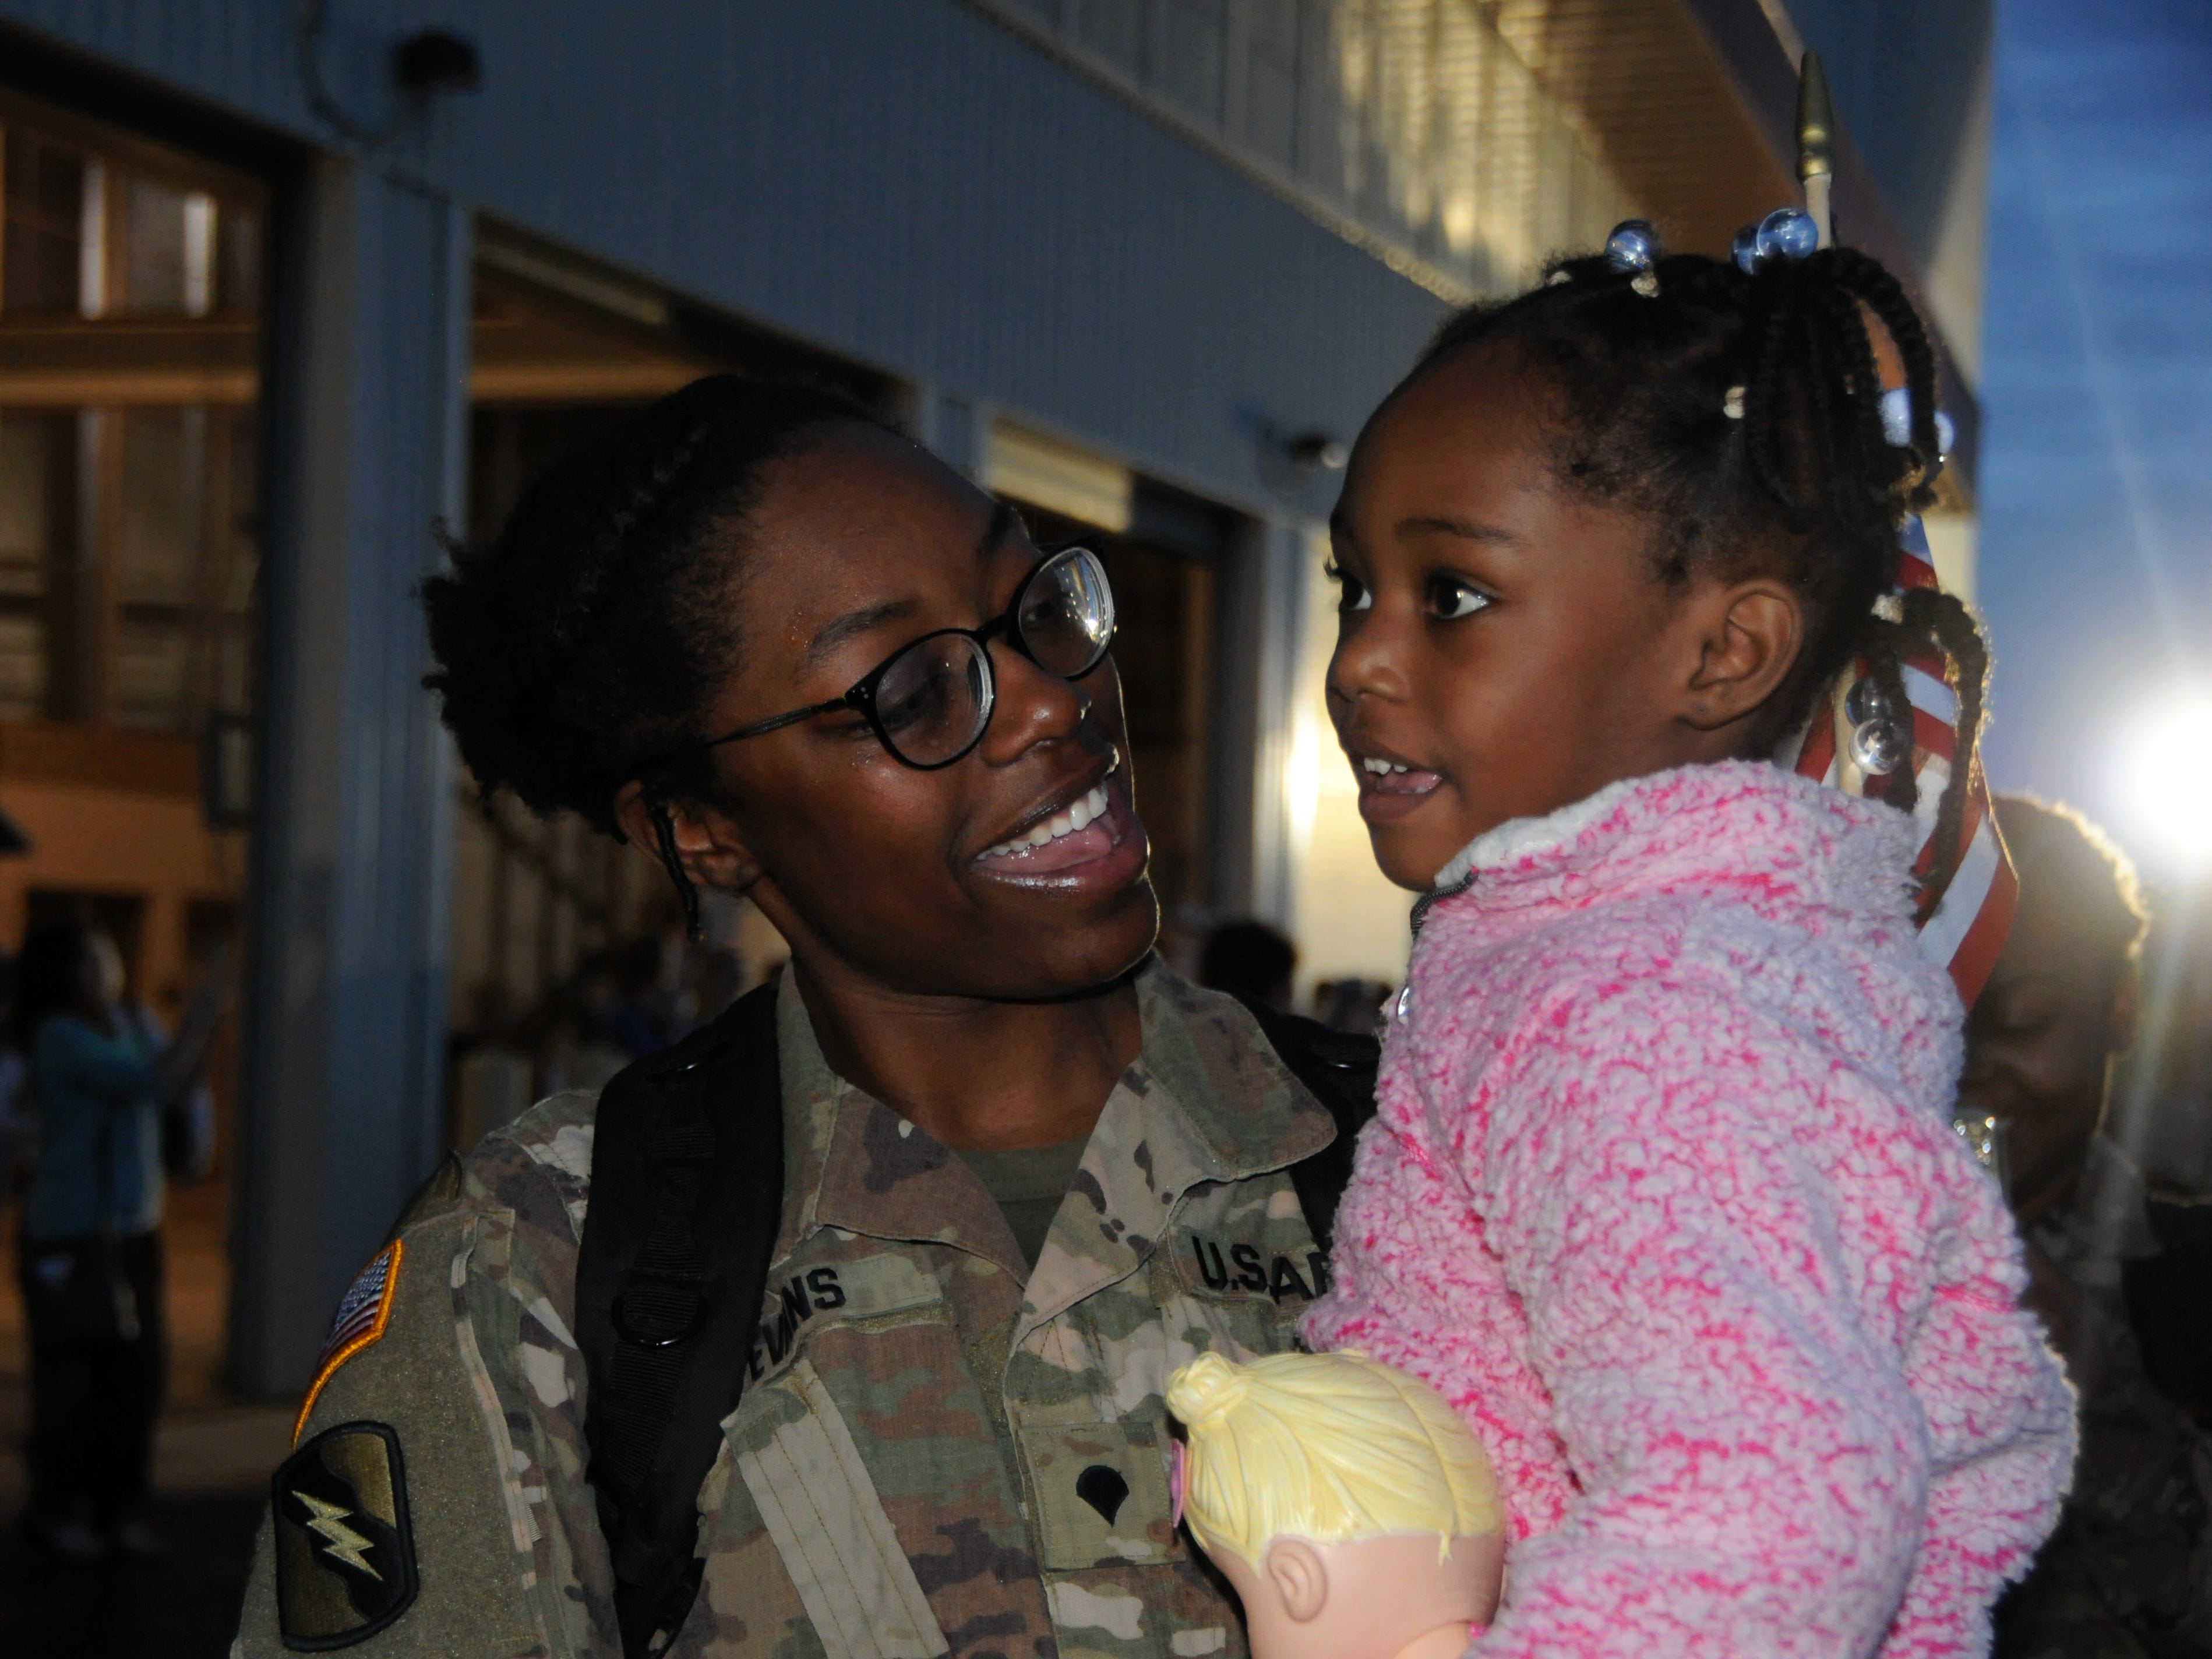 Spc. Lecourtney Evans, of Jackson, greets her daughter Rylei at Thompson Field in Flowood, Miss., Feb. 27, 2019. Evans, was part of a contingent of the Mississippi Army National Guard's 155th Armored Brigade Combat Team returning home after serving in Kuwait in support of Operation Spartan Shield for approximately one year.